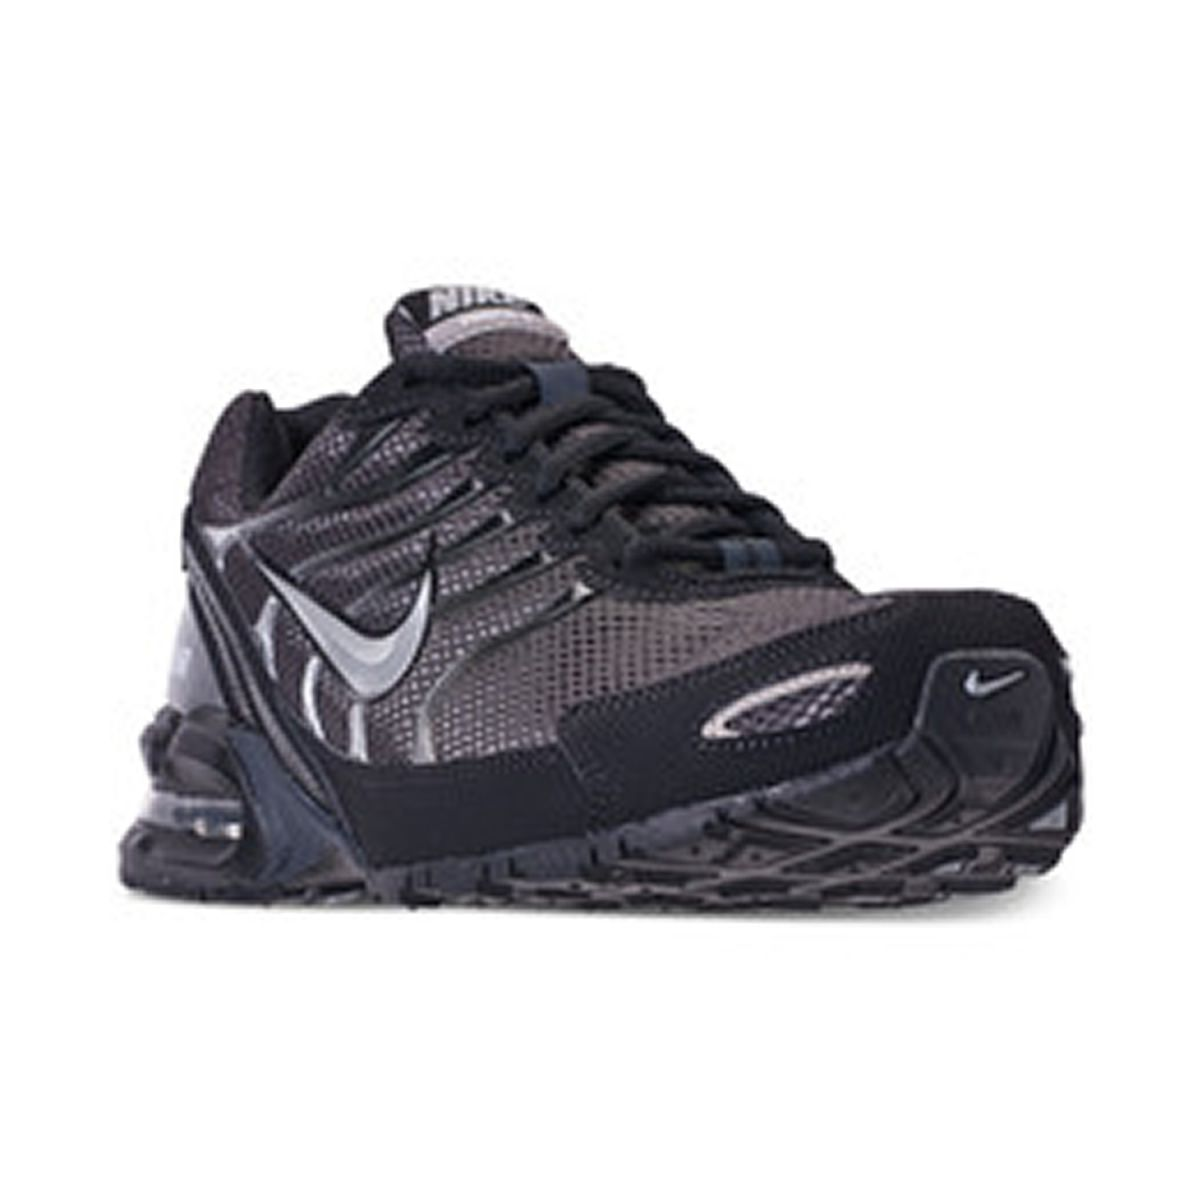 1d38f8458ae2 Nike Finish Line Shoes for Men - Macy s